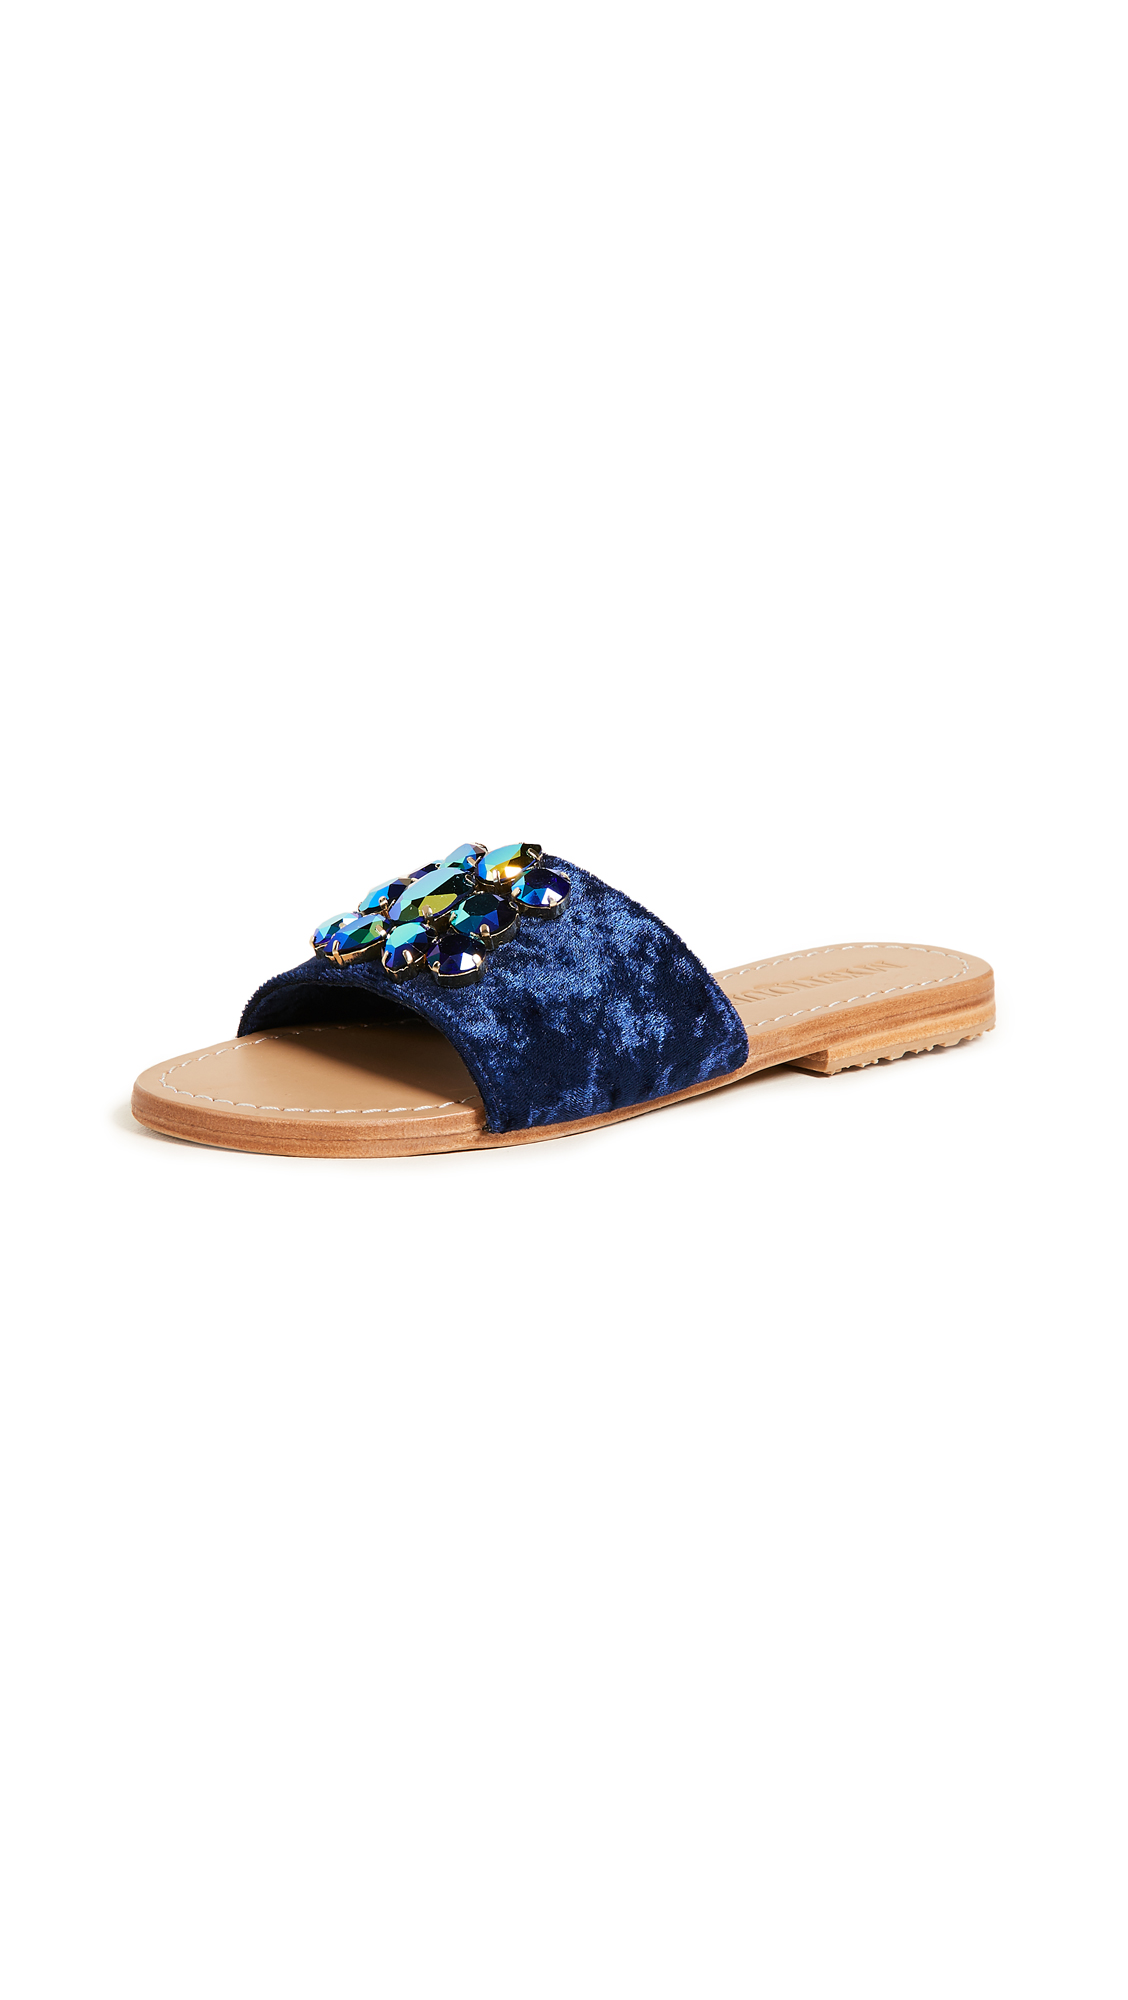 Mystique Jewel Slides - Navy